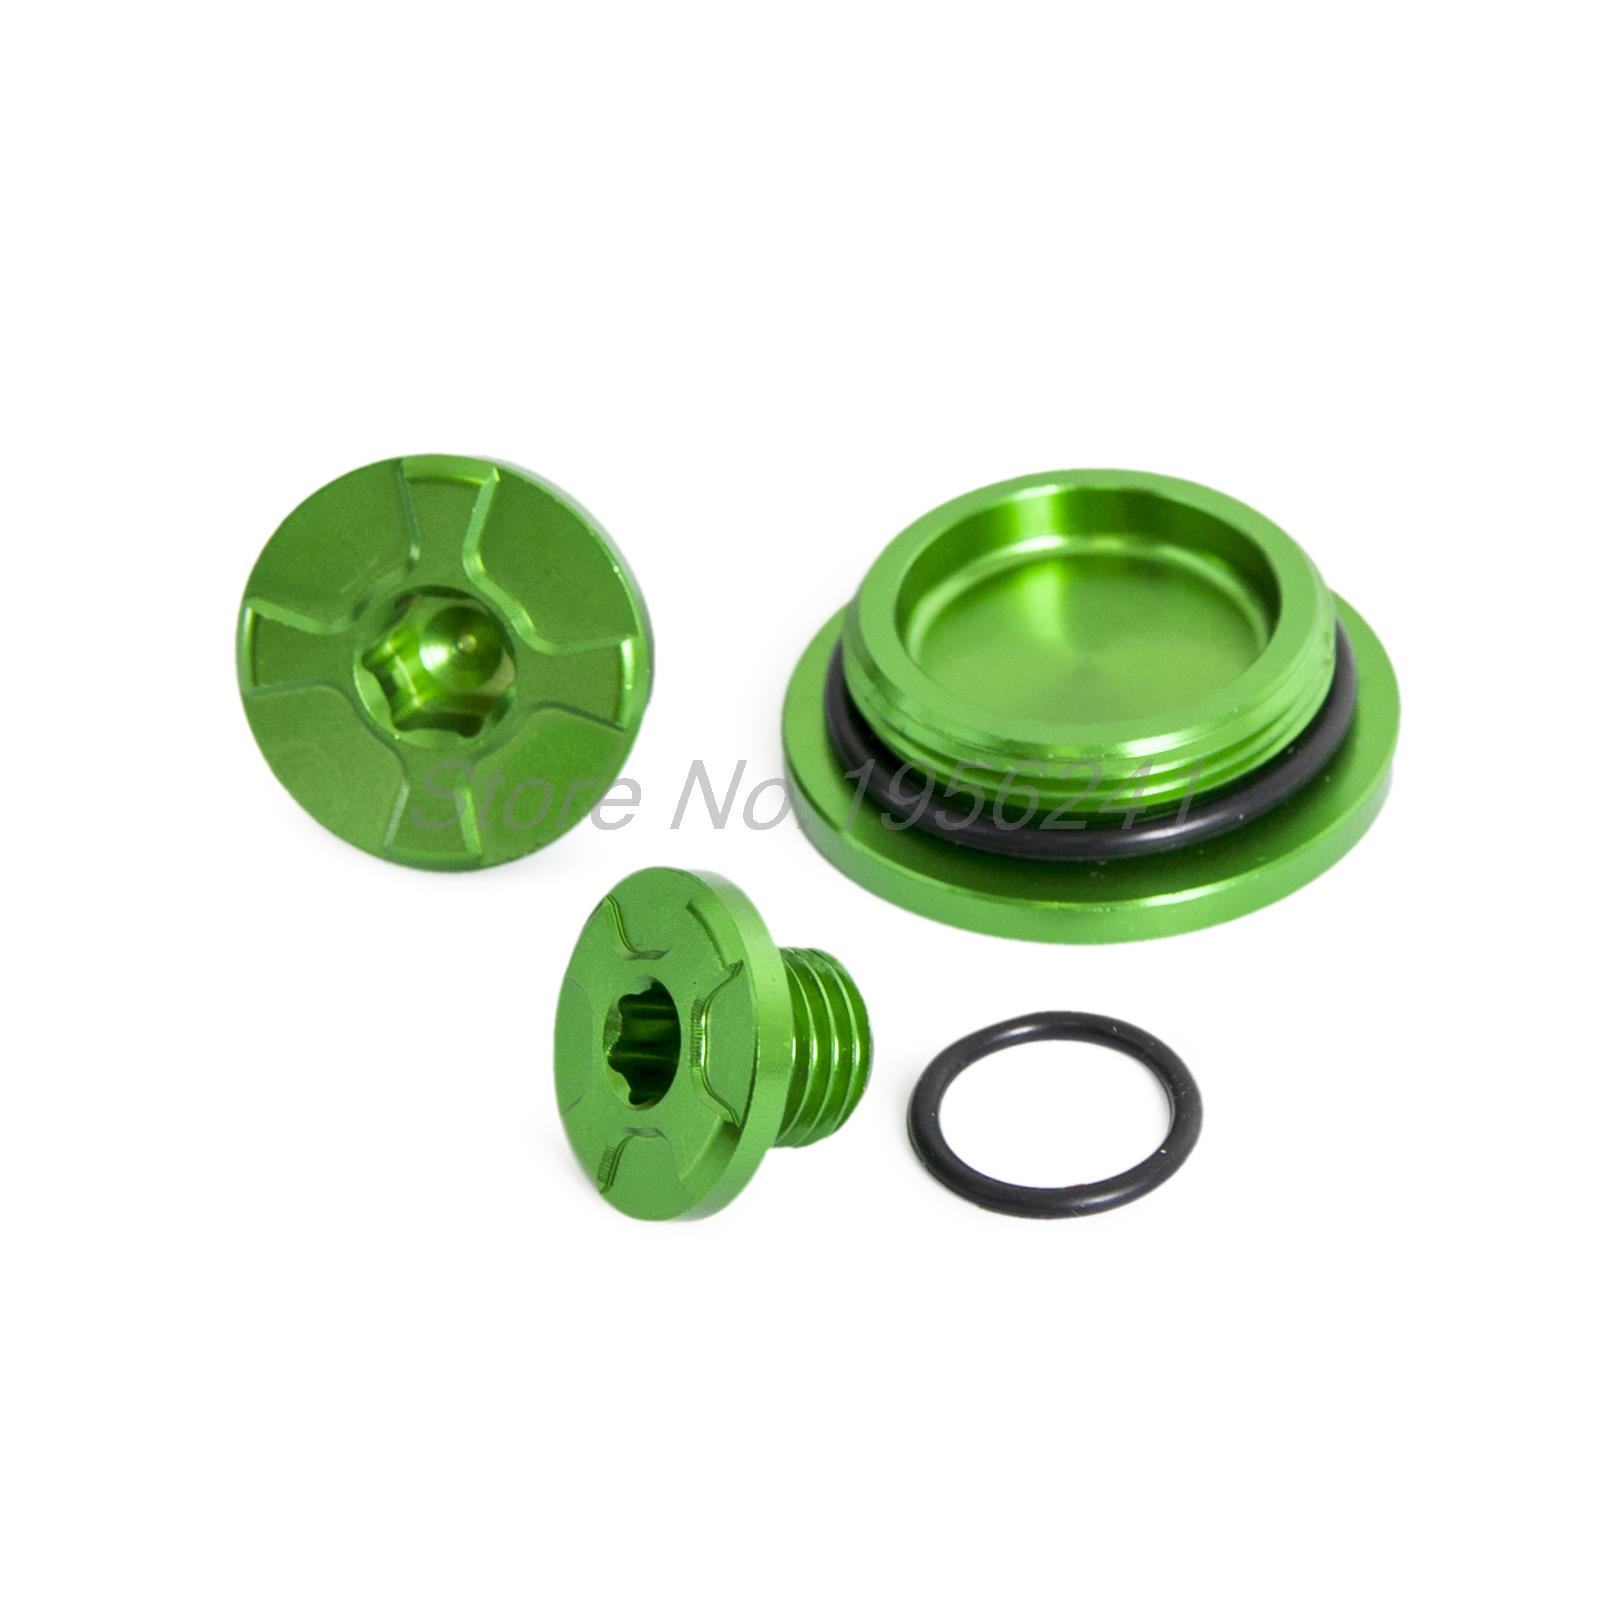 Crankcase Cover Engine Plug & Oil Filler Plug for Kawasaki KX250F 2011-2016 KX450F 2009-2016 KLX450R 2008-2015